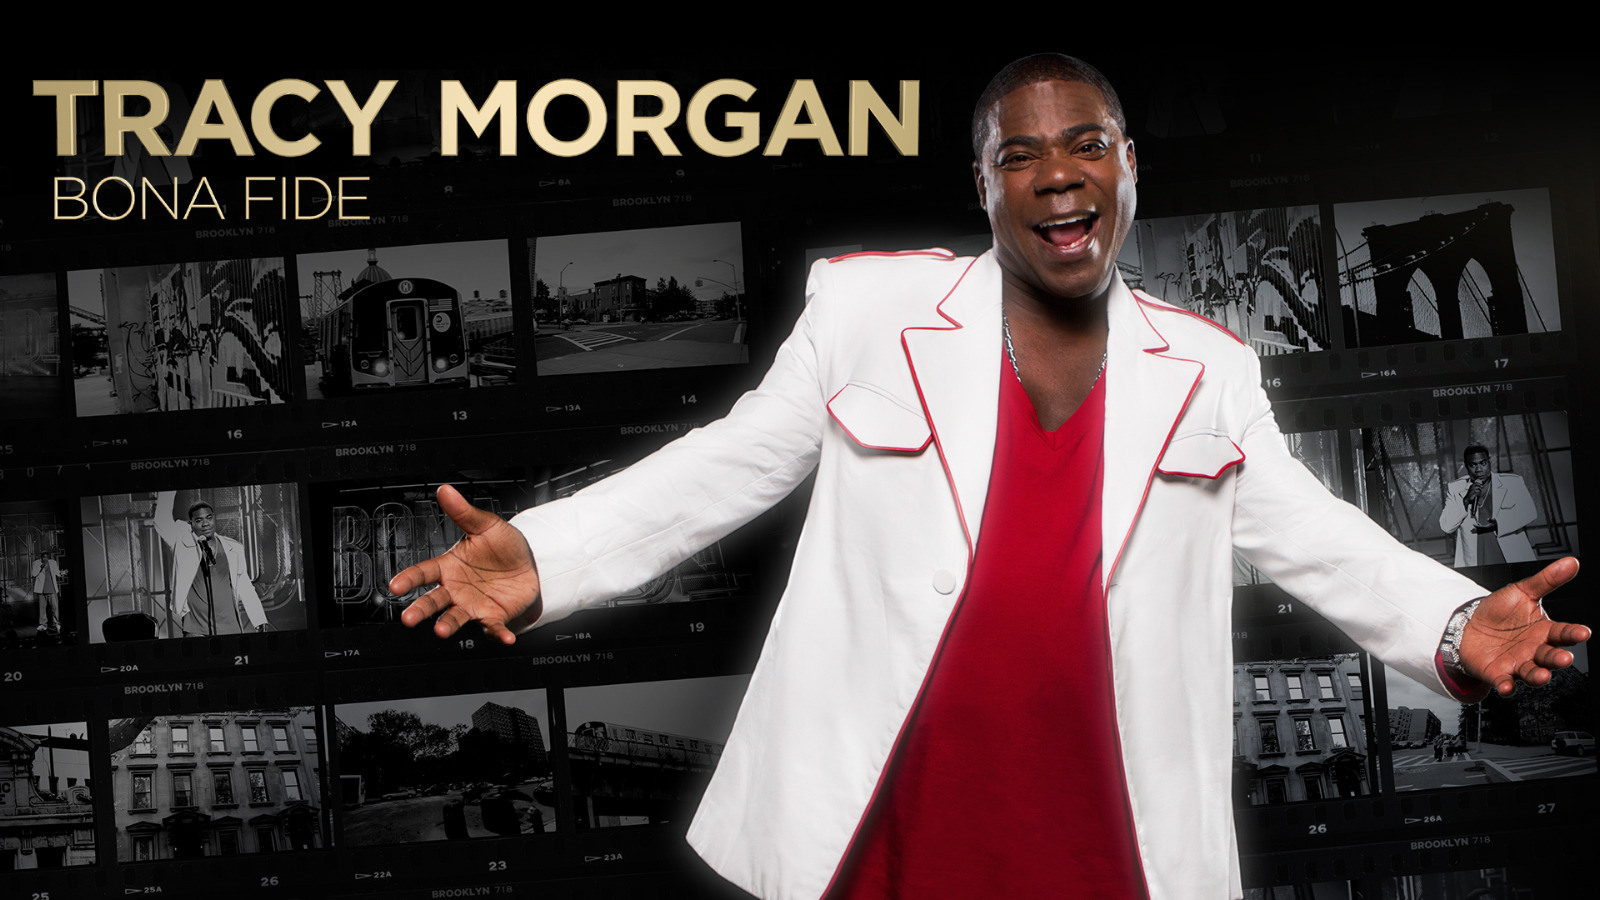 TRACY MORGAN - BONA FIDE